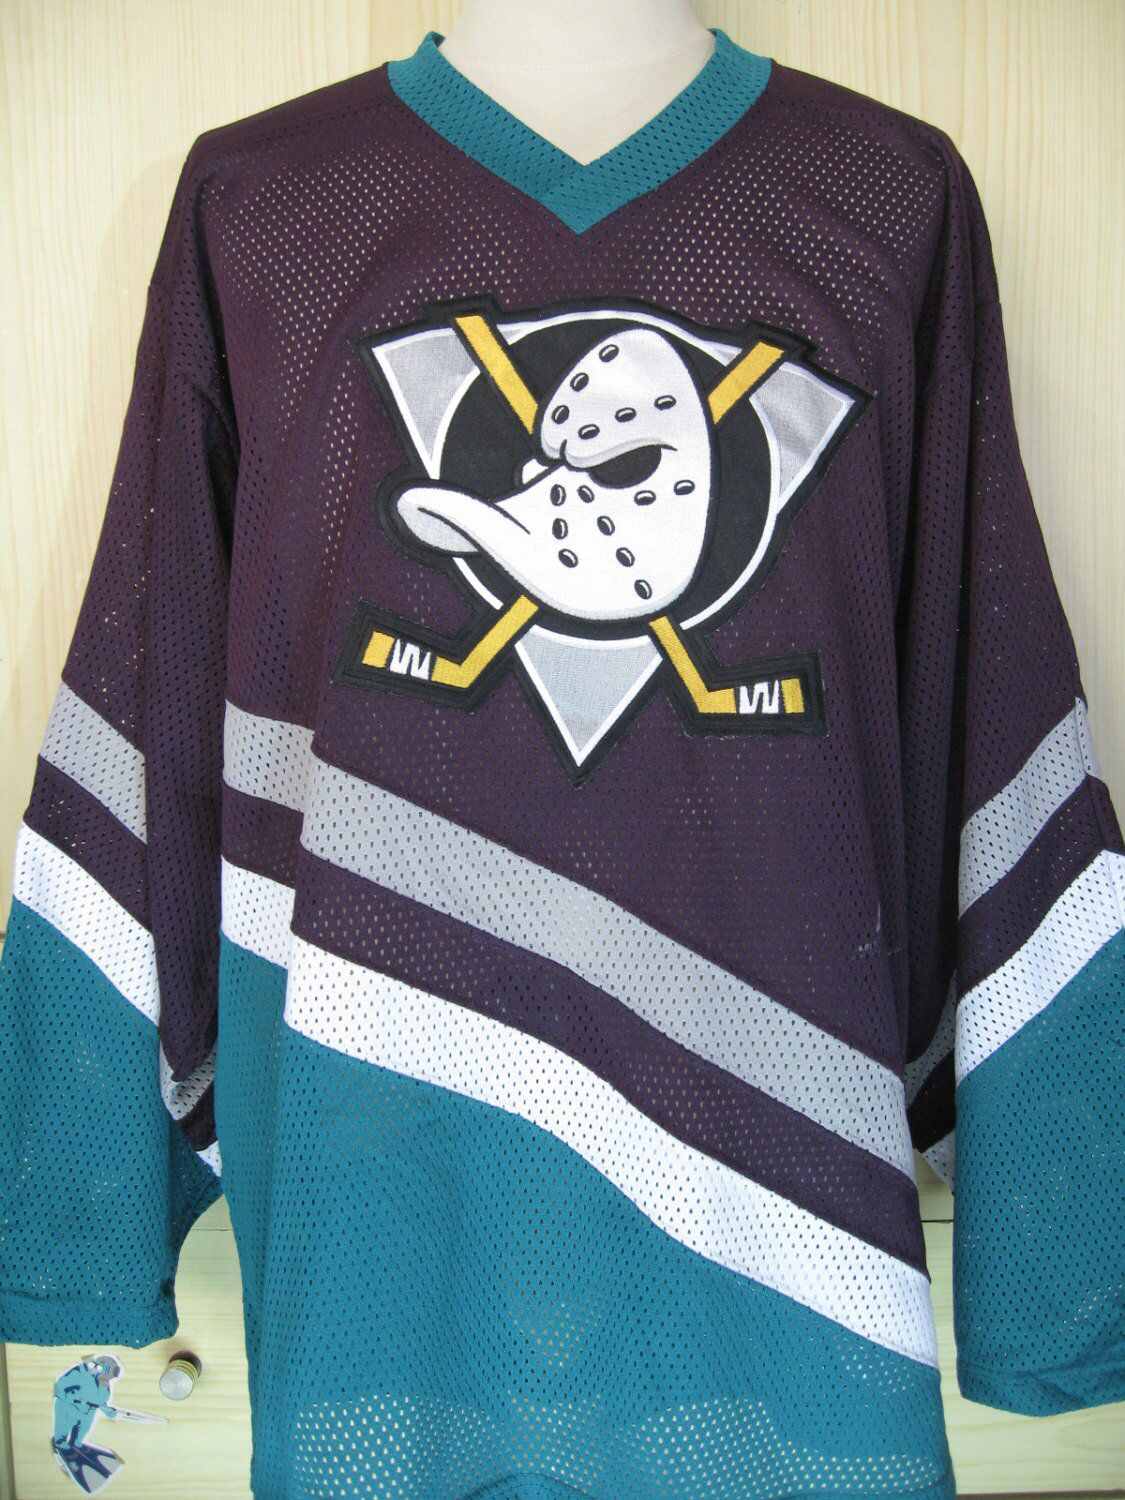 Excited to share the latest addition to my  etsy shop  Vintage 90s Anaheim  Mighty Ducks Home CCM Player Issue nhl ice hockey nhl jersey shirt long  sleeved ... 624c87cdb